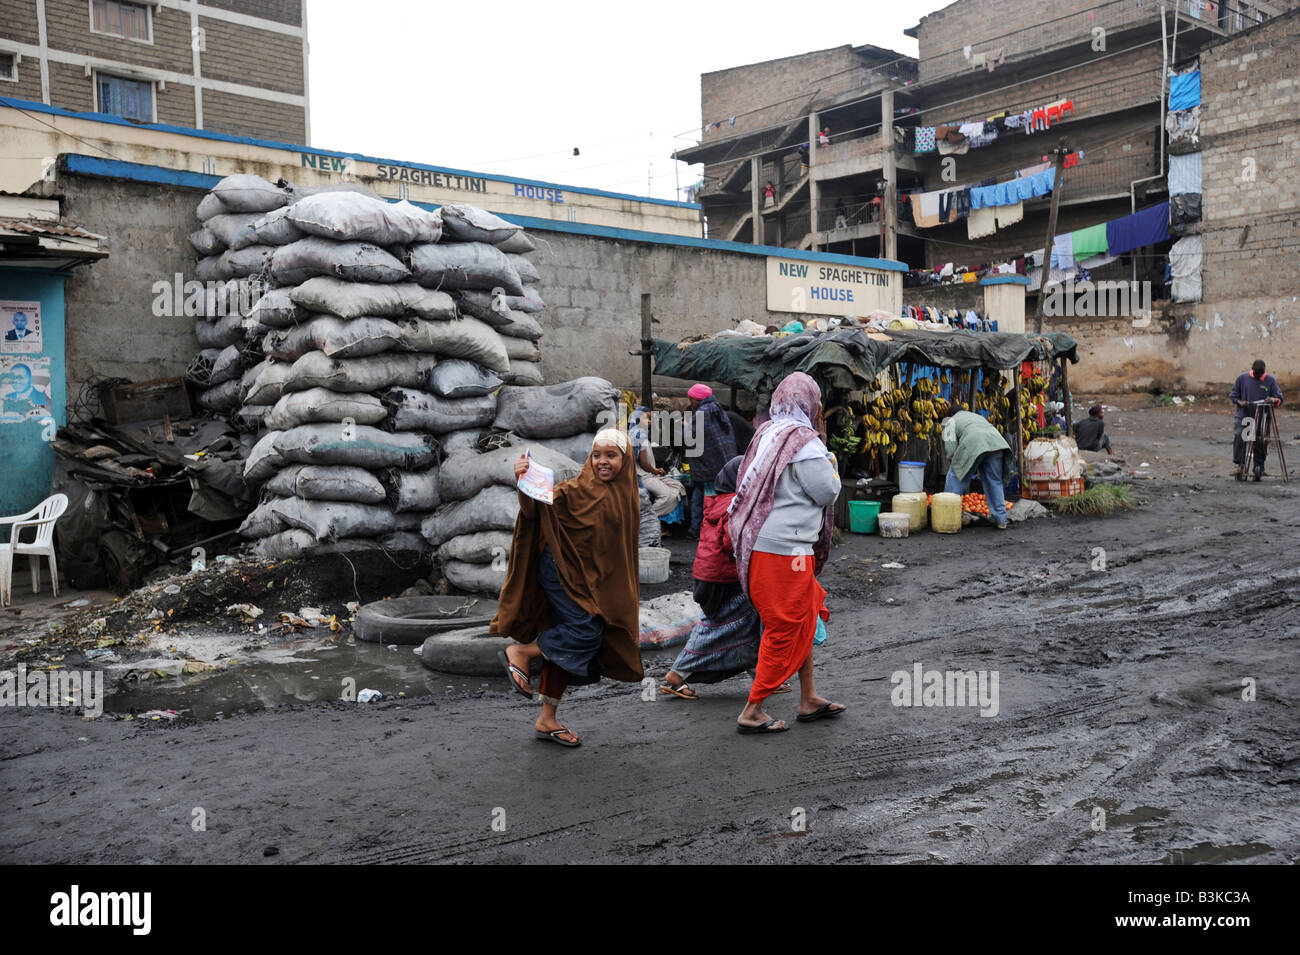 The Somali suburb of Eastleigh in Nairobi Kenya 6 7 2008 - Stock Image